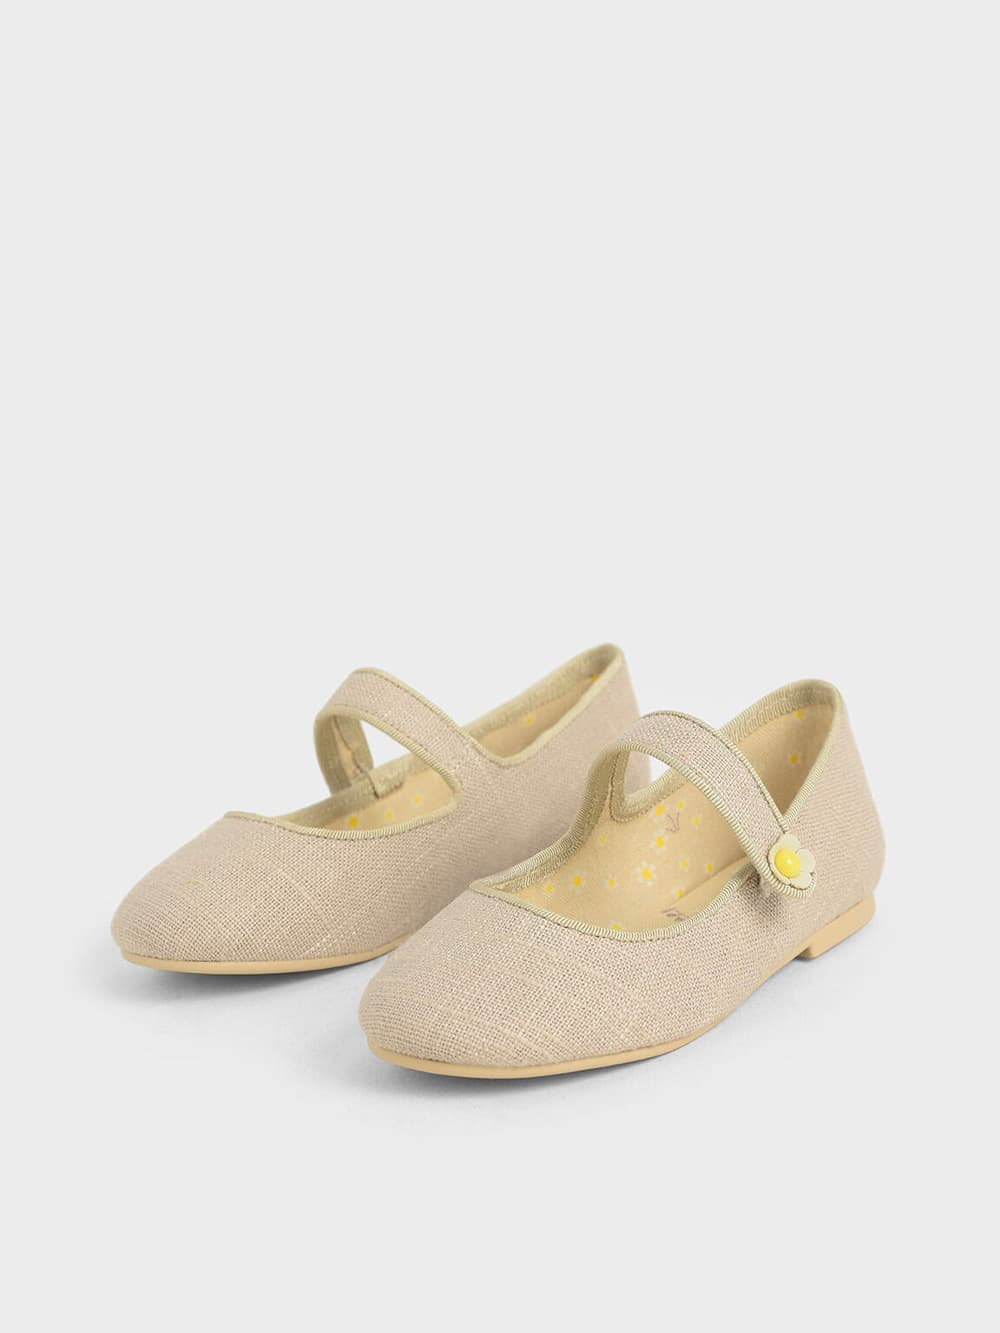 Girls' Cotton Mary Jane Ballerinas